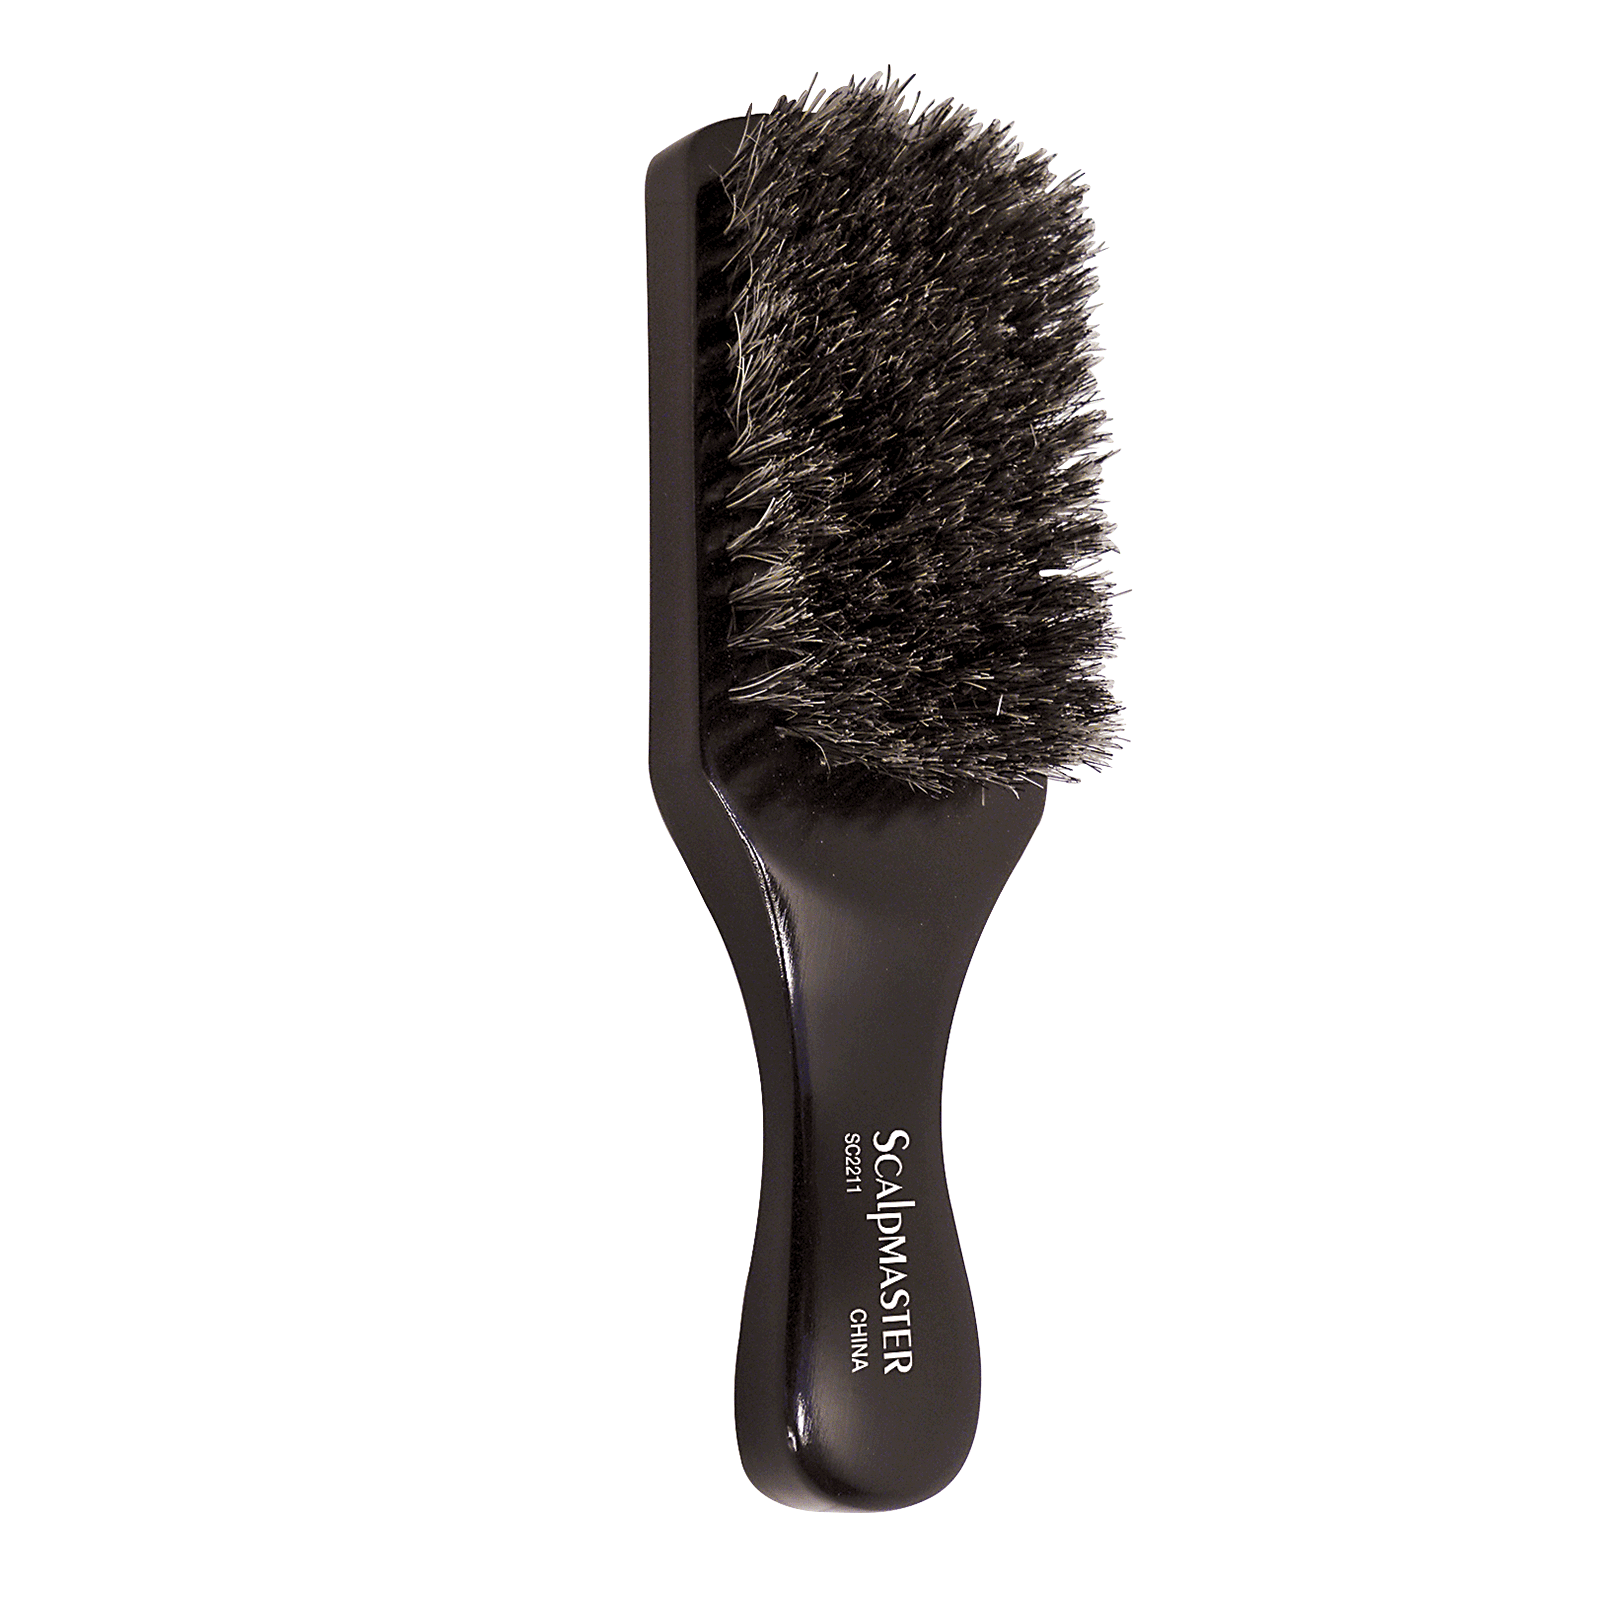 Scalpmasters 9 Row Club Brush